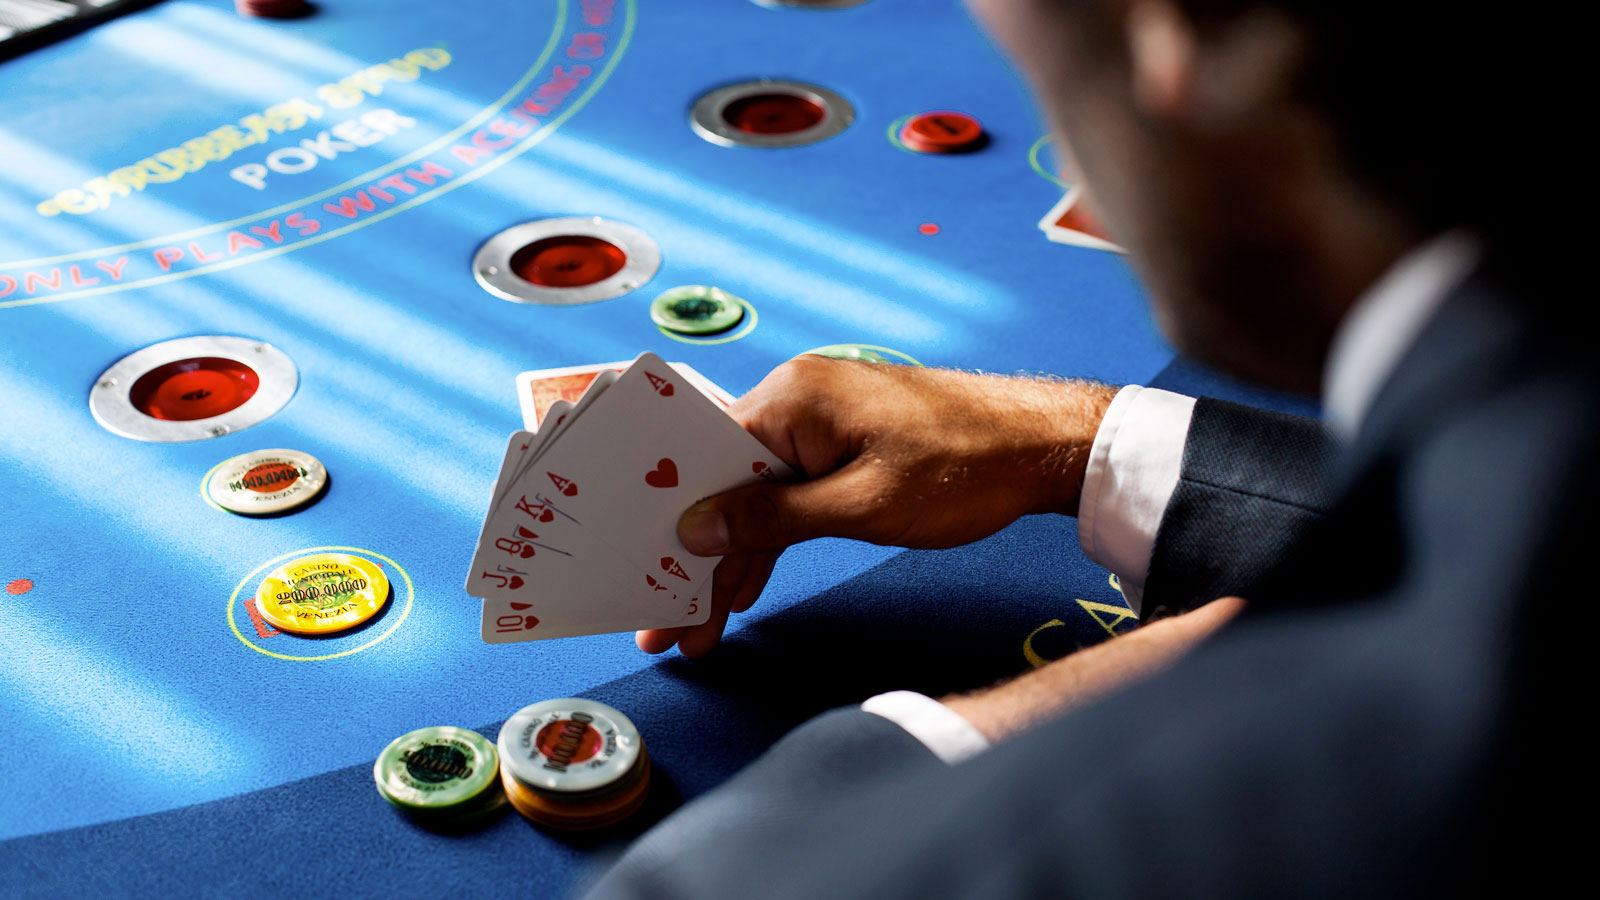 Why   to have a clear understanding of poker merits?